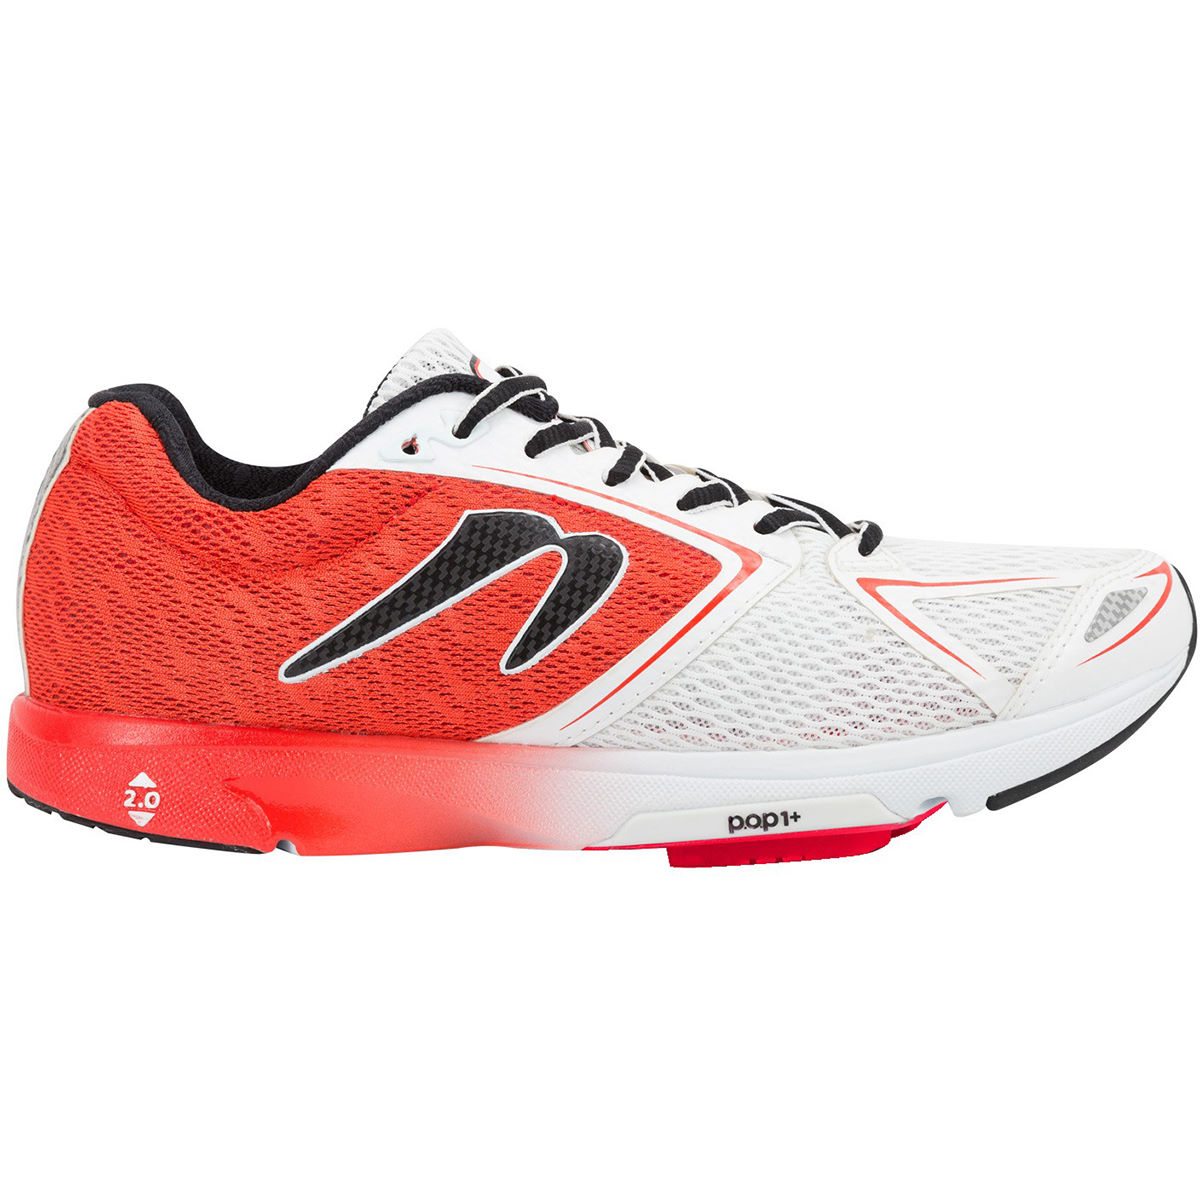 Chaussures Newton Running Shoes Distance VI - 12 UK Rouge/Blanc Chaussures de running amorties